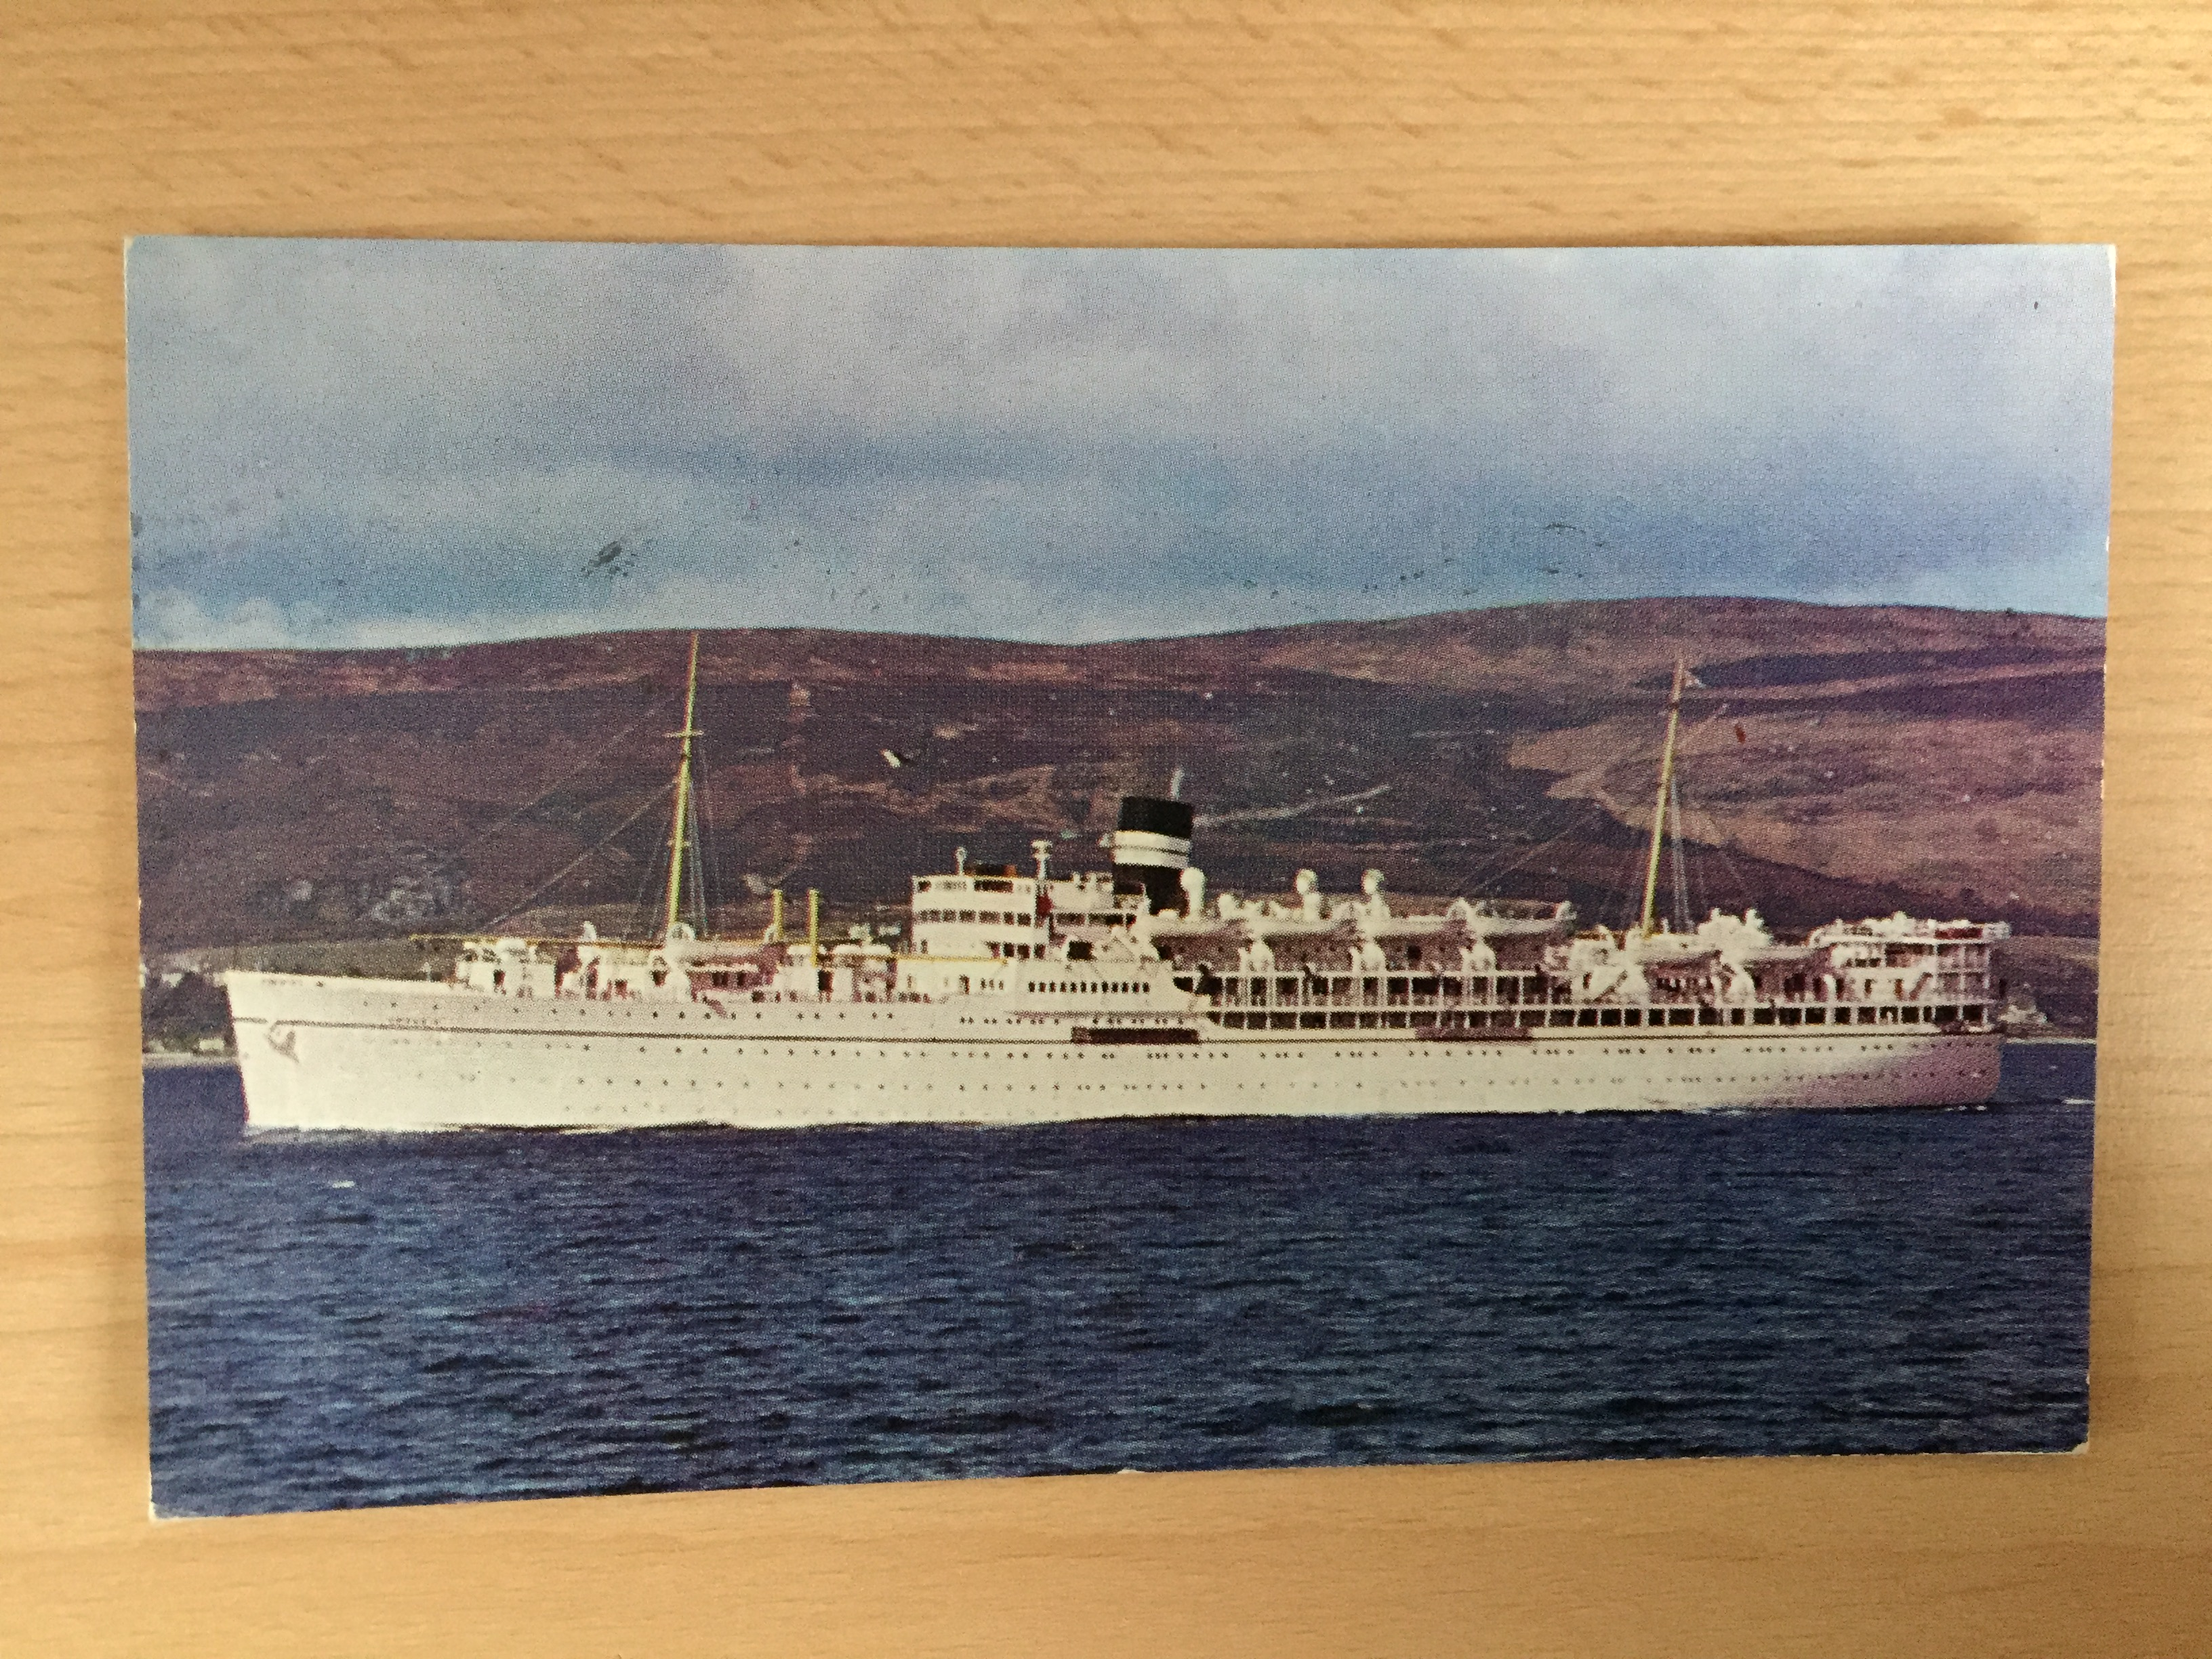 USED COLOUR POSTCARD FROM THE VESSEL MS DEVONIA FROM THE BRITISH INDIA STEAM NAVIGATION COMPANY